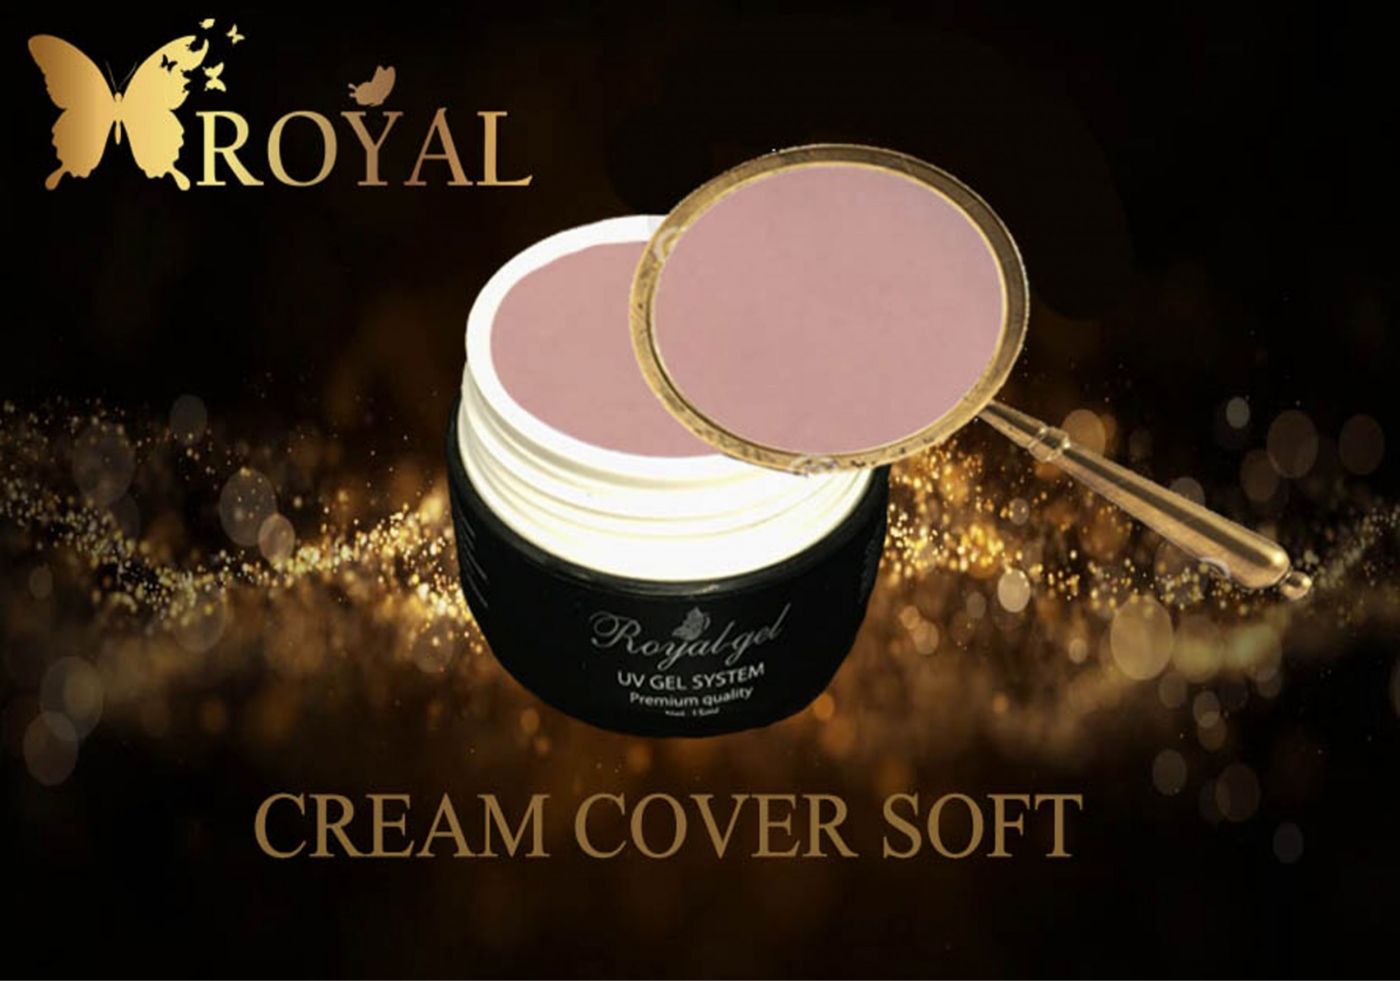 CREAM COVER SOFT ROYAL GEL